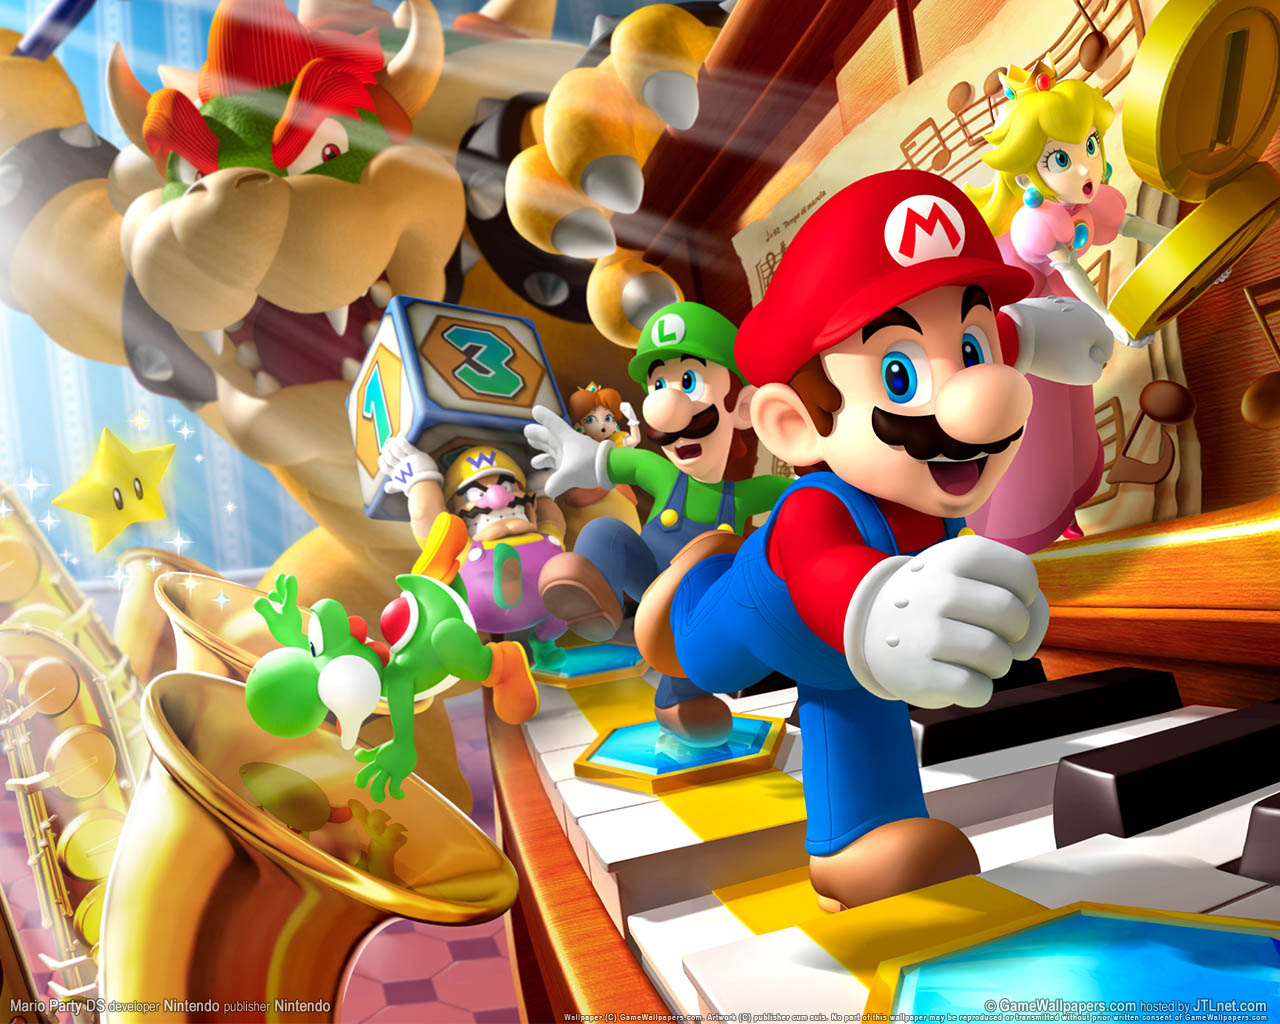 Mario Party 10 – Threatening Friendships in 720p